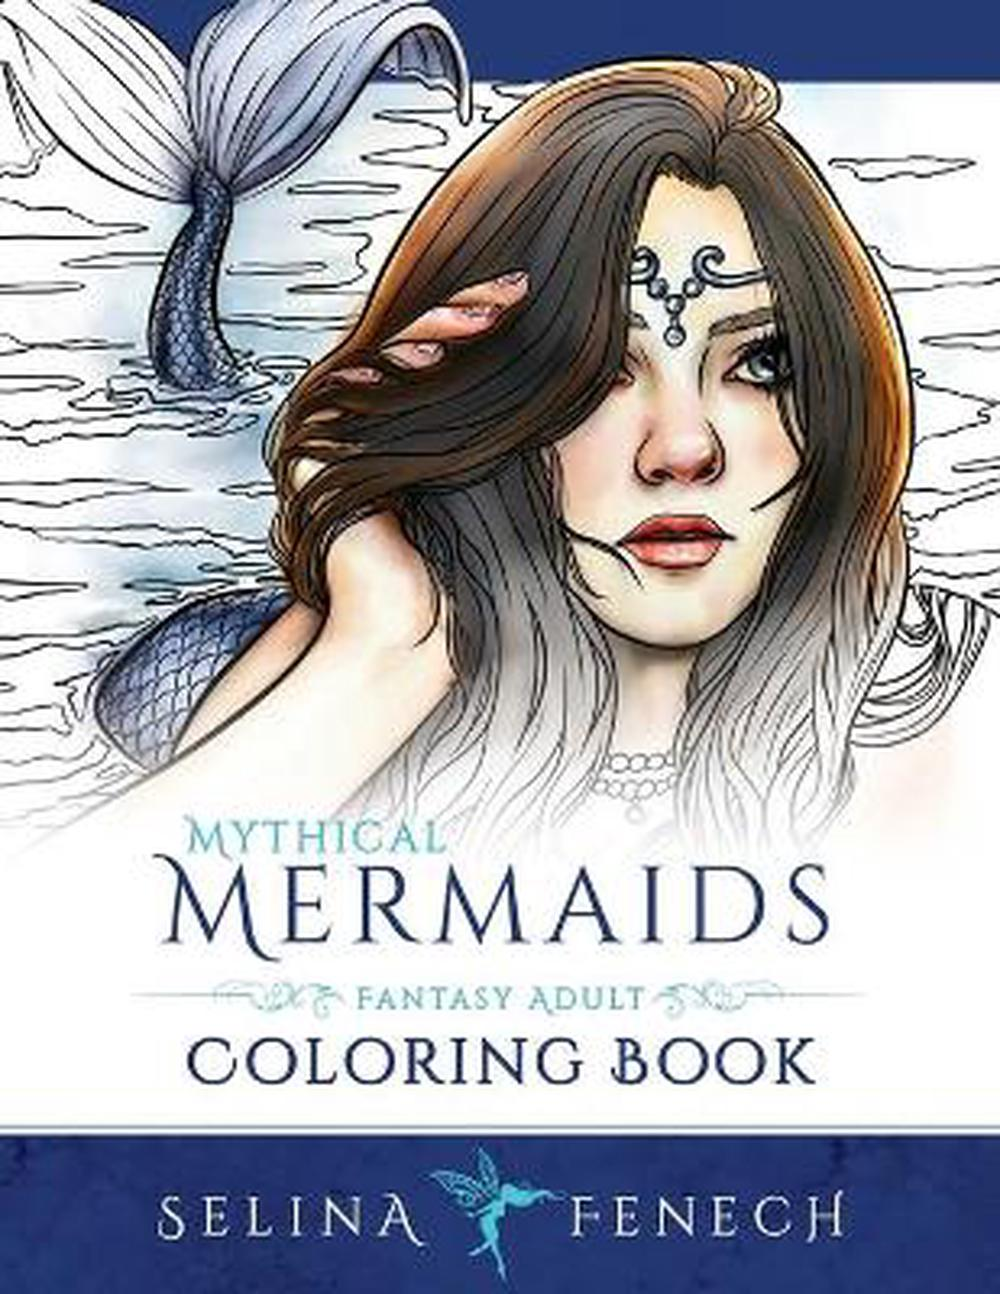 - Mythical Mermaids - Fantasy Adult Coloring Book By Selina Fenech